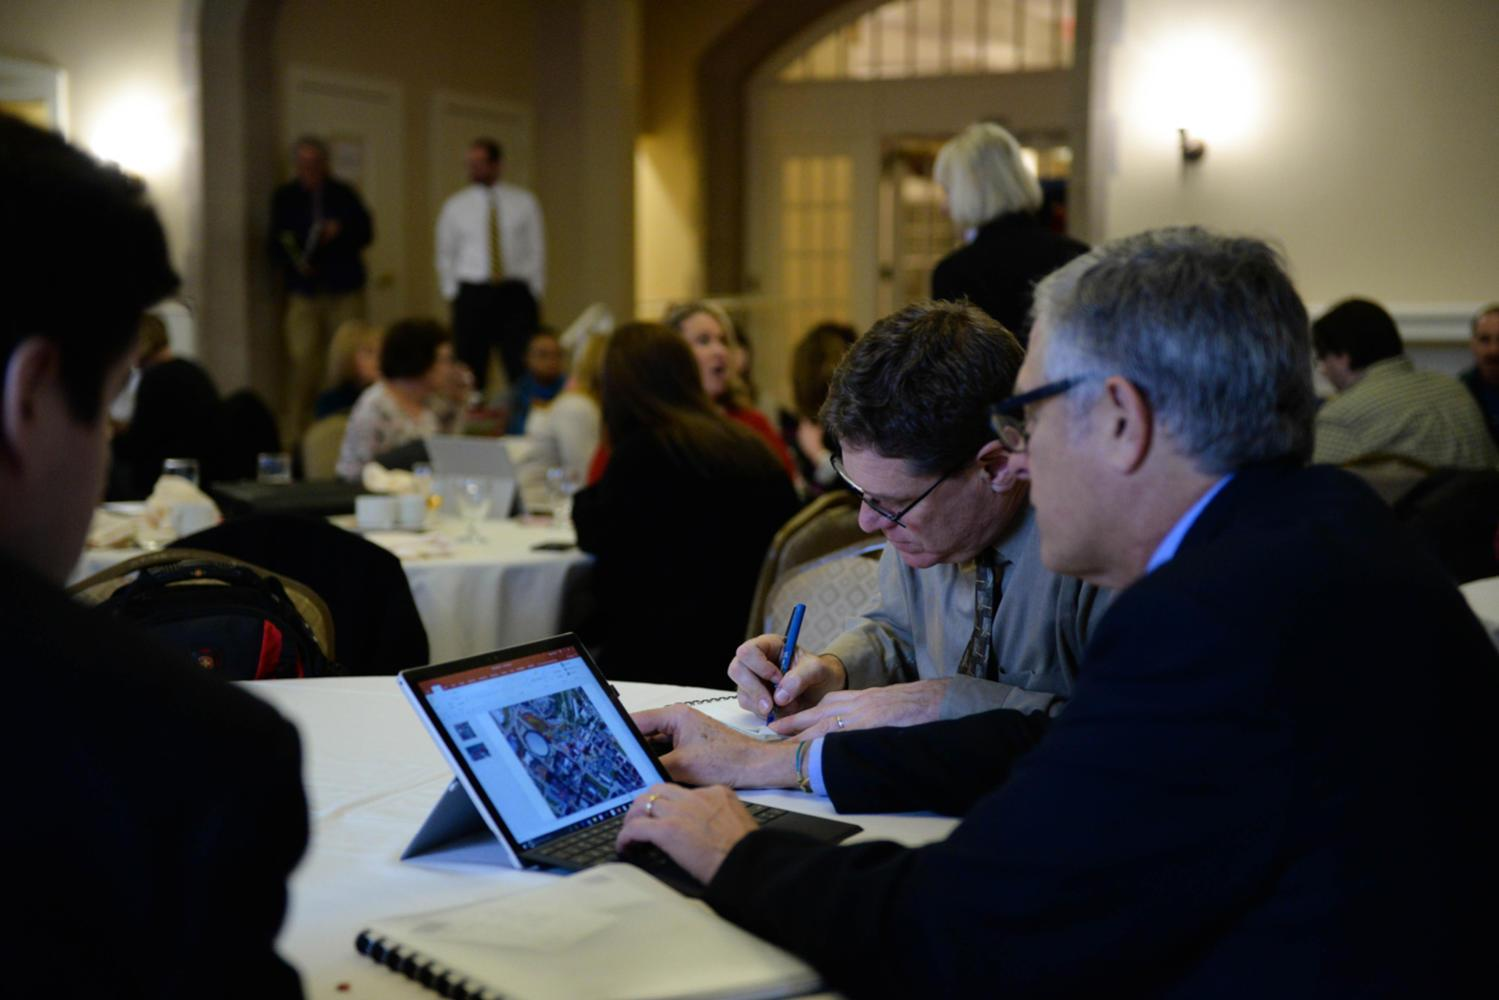 Ron Leibow, an employee of Pitt's Office of Facilities Management, watches on as architect Adam Gross (right) views the campus master plan on his laptop. (Photo by Christian Snyder | Online Visual Editor)